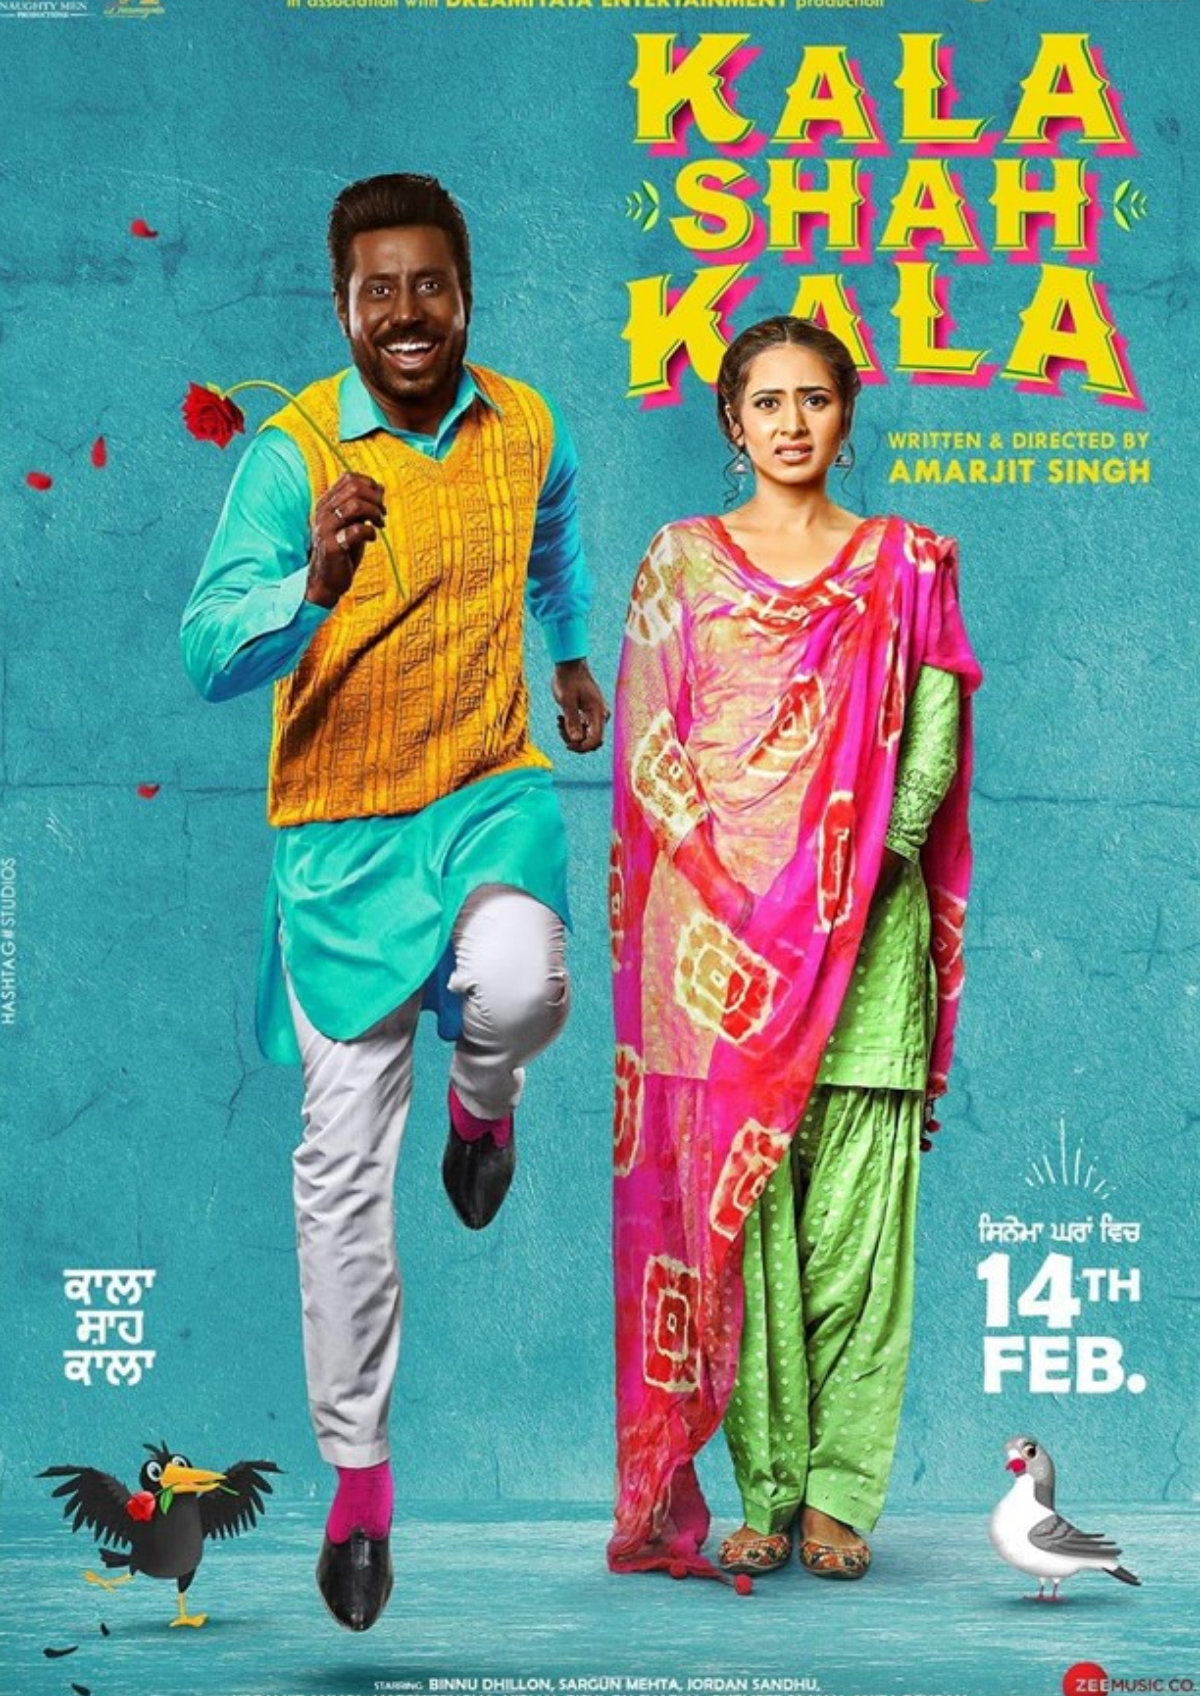 'Kala Shah Kala' movie poster